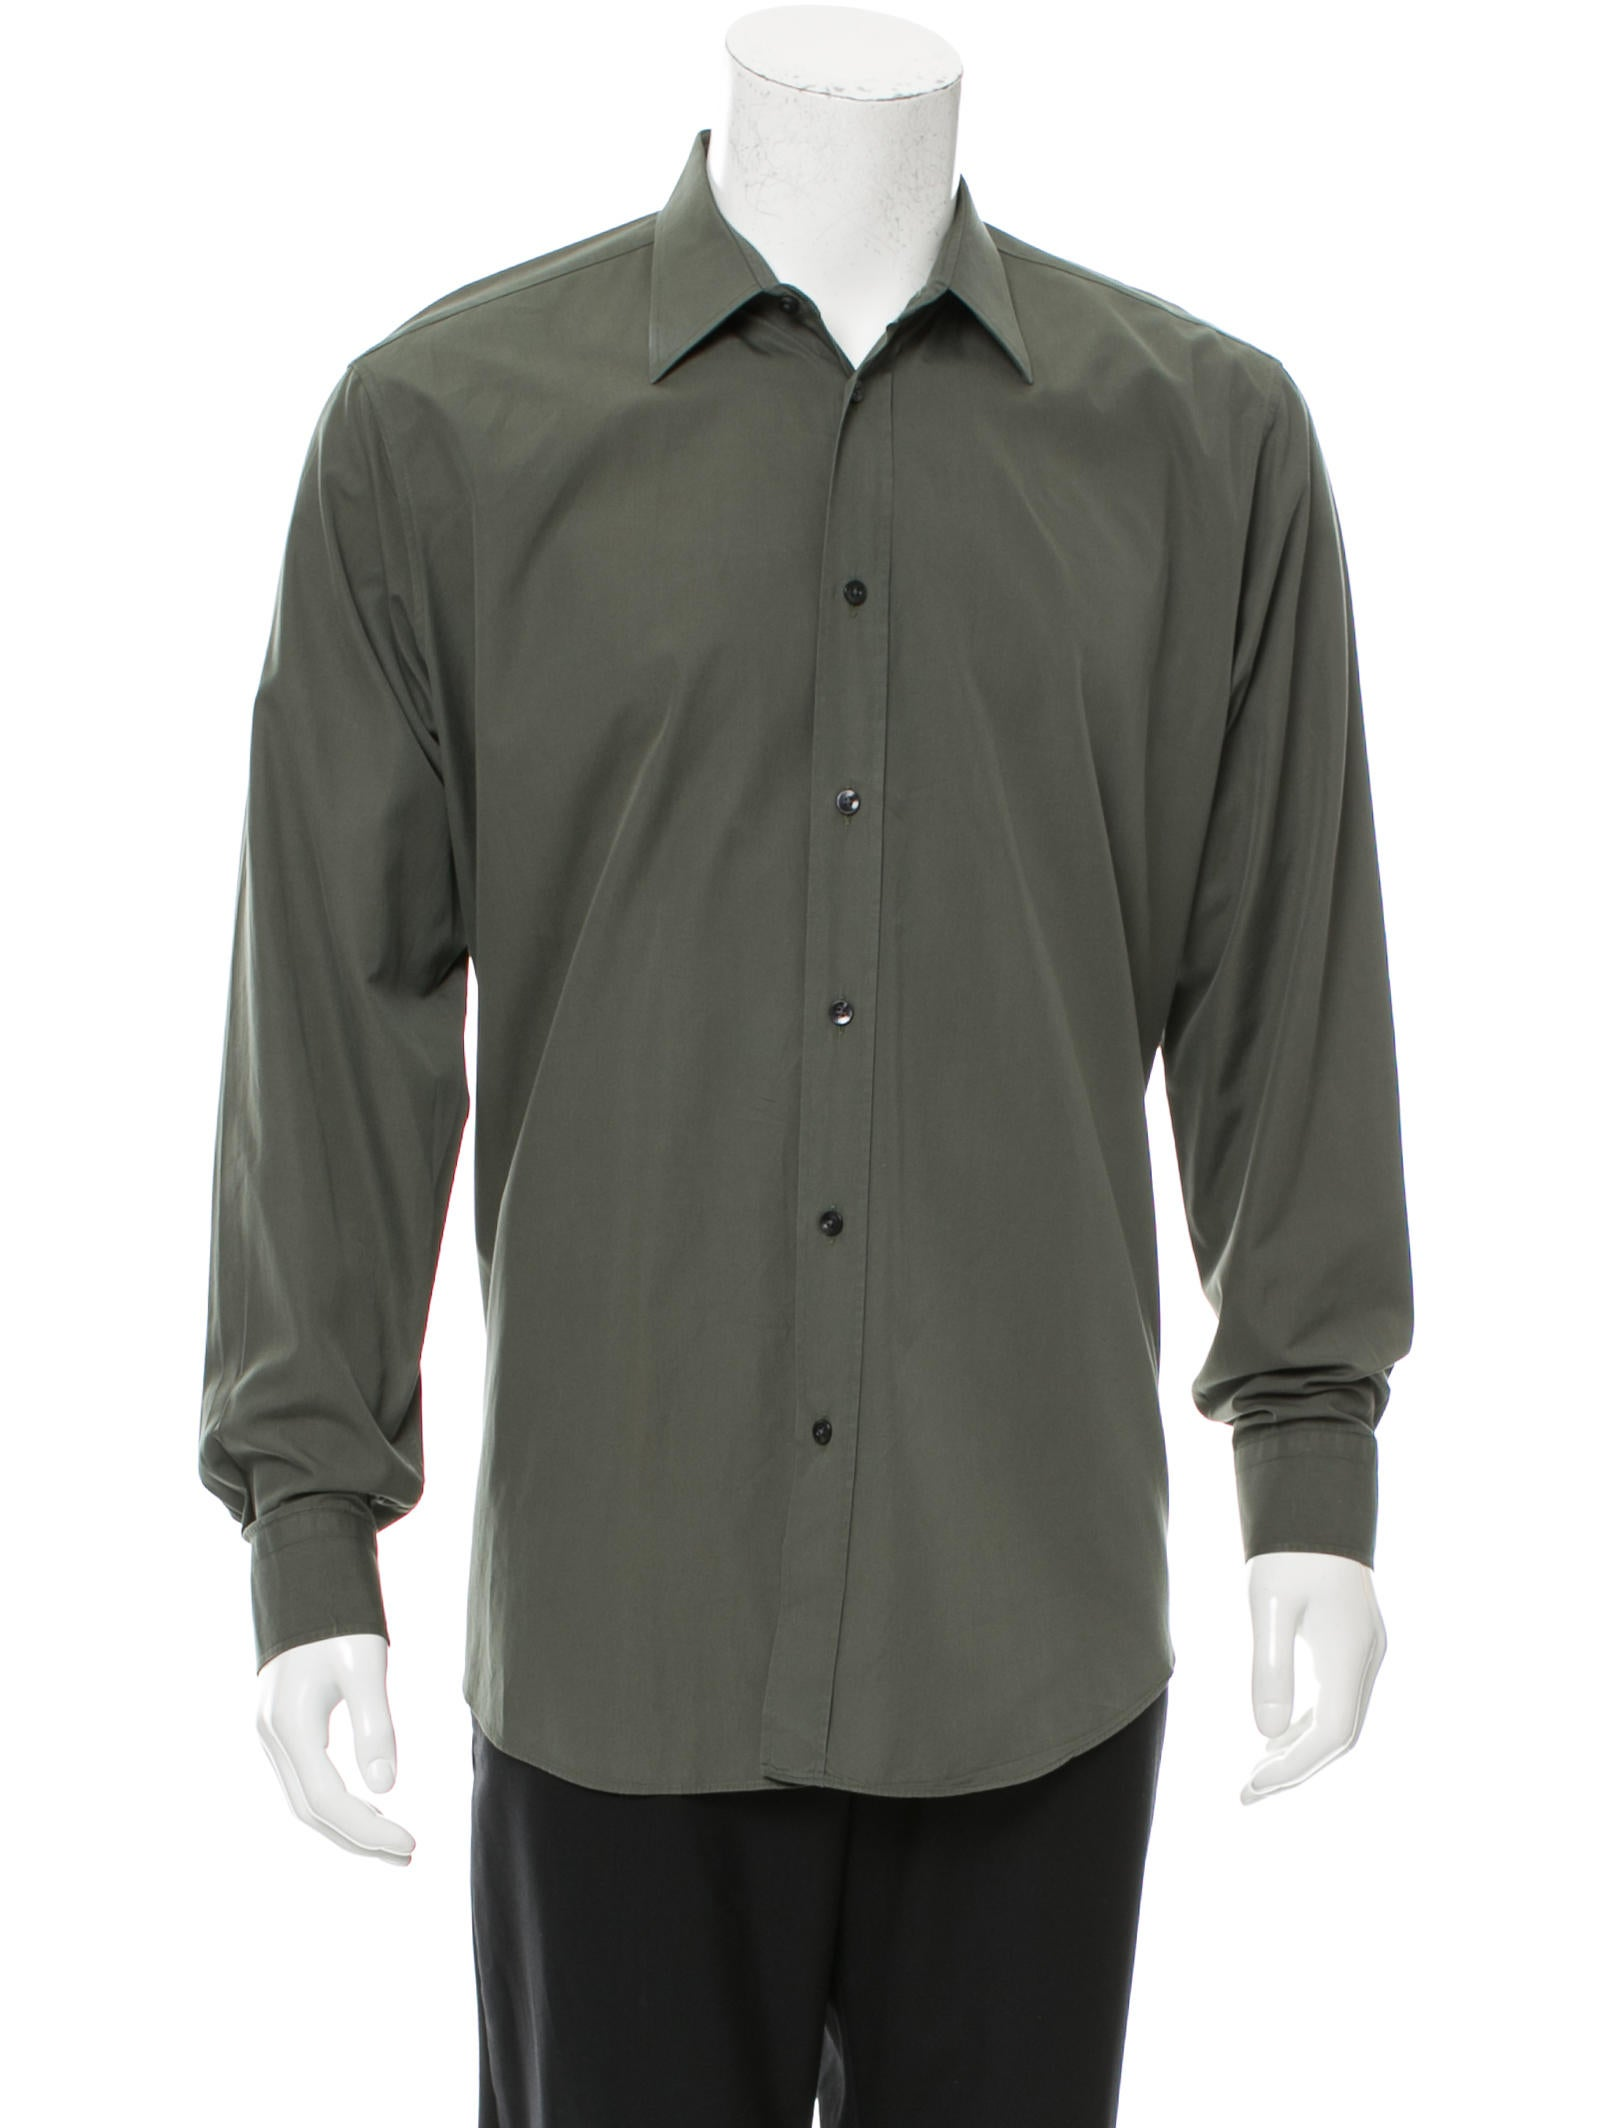 Mens Button Down Shirts. Sort By Preswick & Moore street fancy long sleeve button down shirt with a mini check pattern features buttoned cuffs and an expandable spread collar that stretches up to one inch. 60% Cotton. 40% Polyester. Machine wash. Tumble dry.